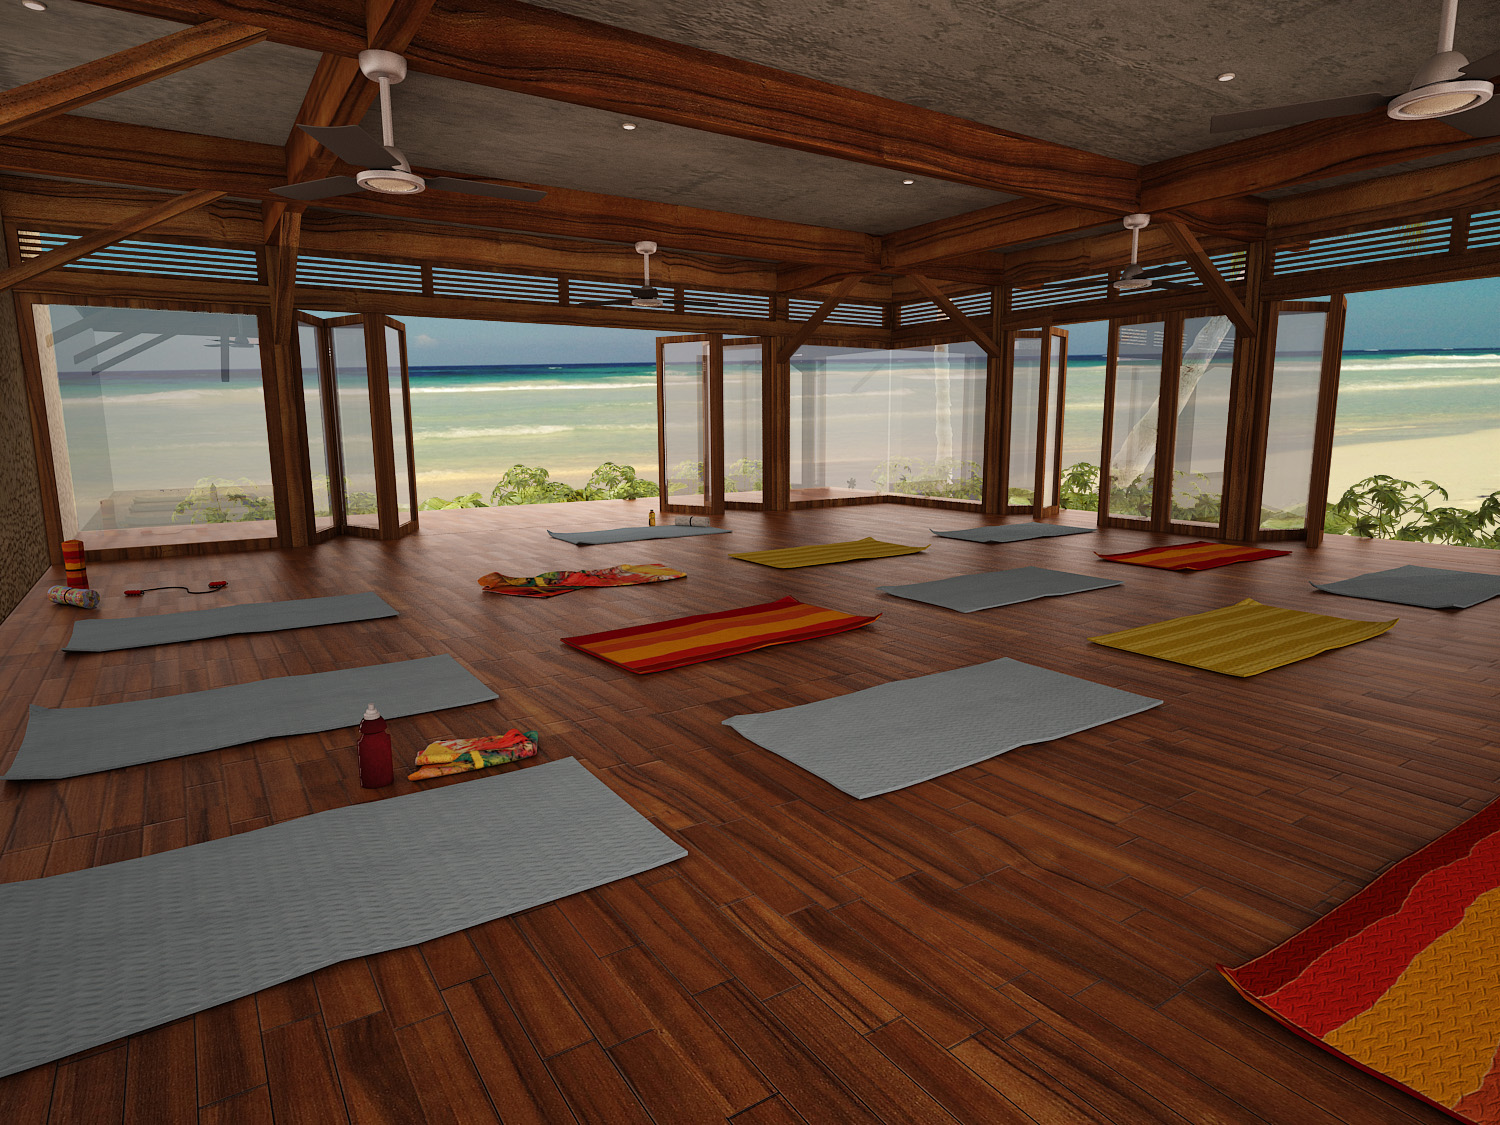 Sanara - Yoga & Studio Space